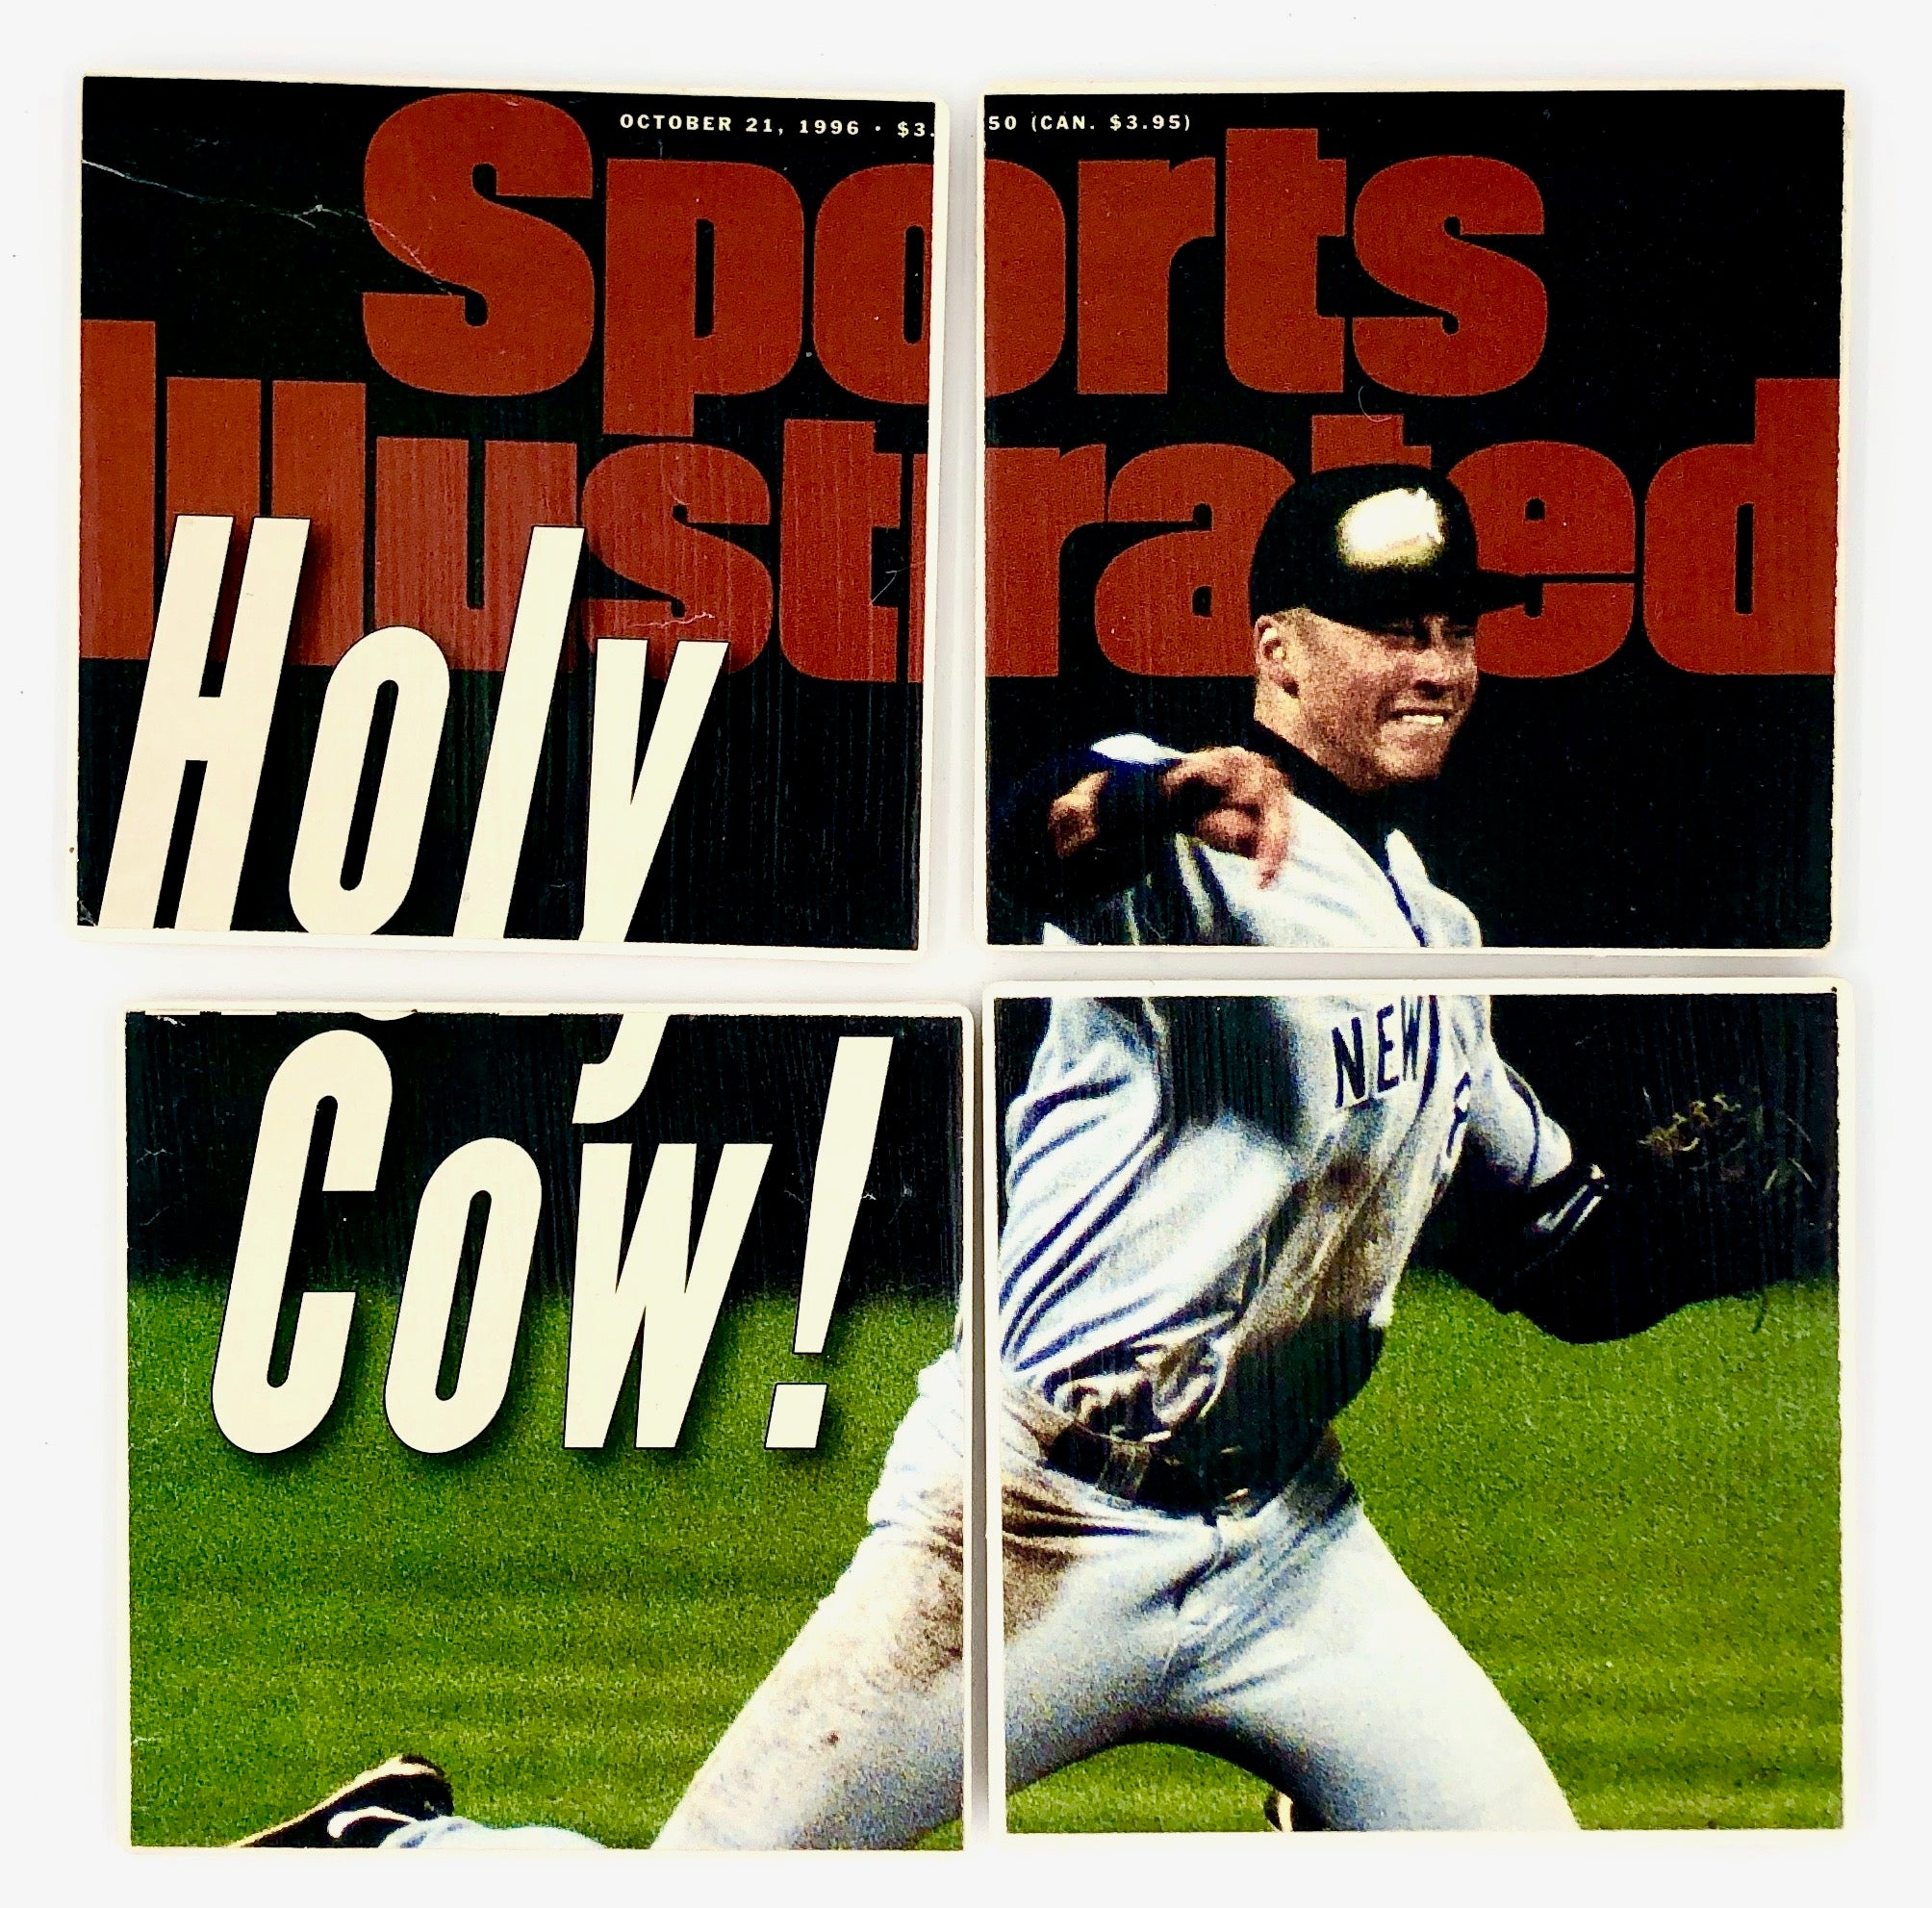 COASTERS - Derek Jeter Sports Illustrated 1996